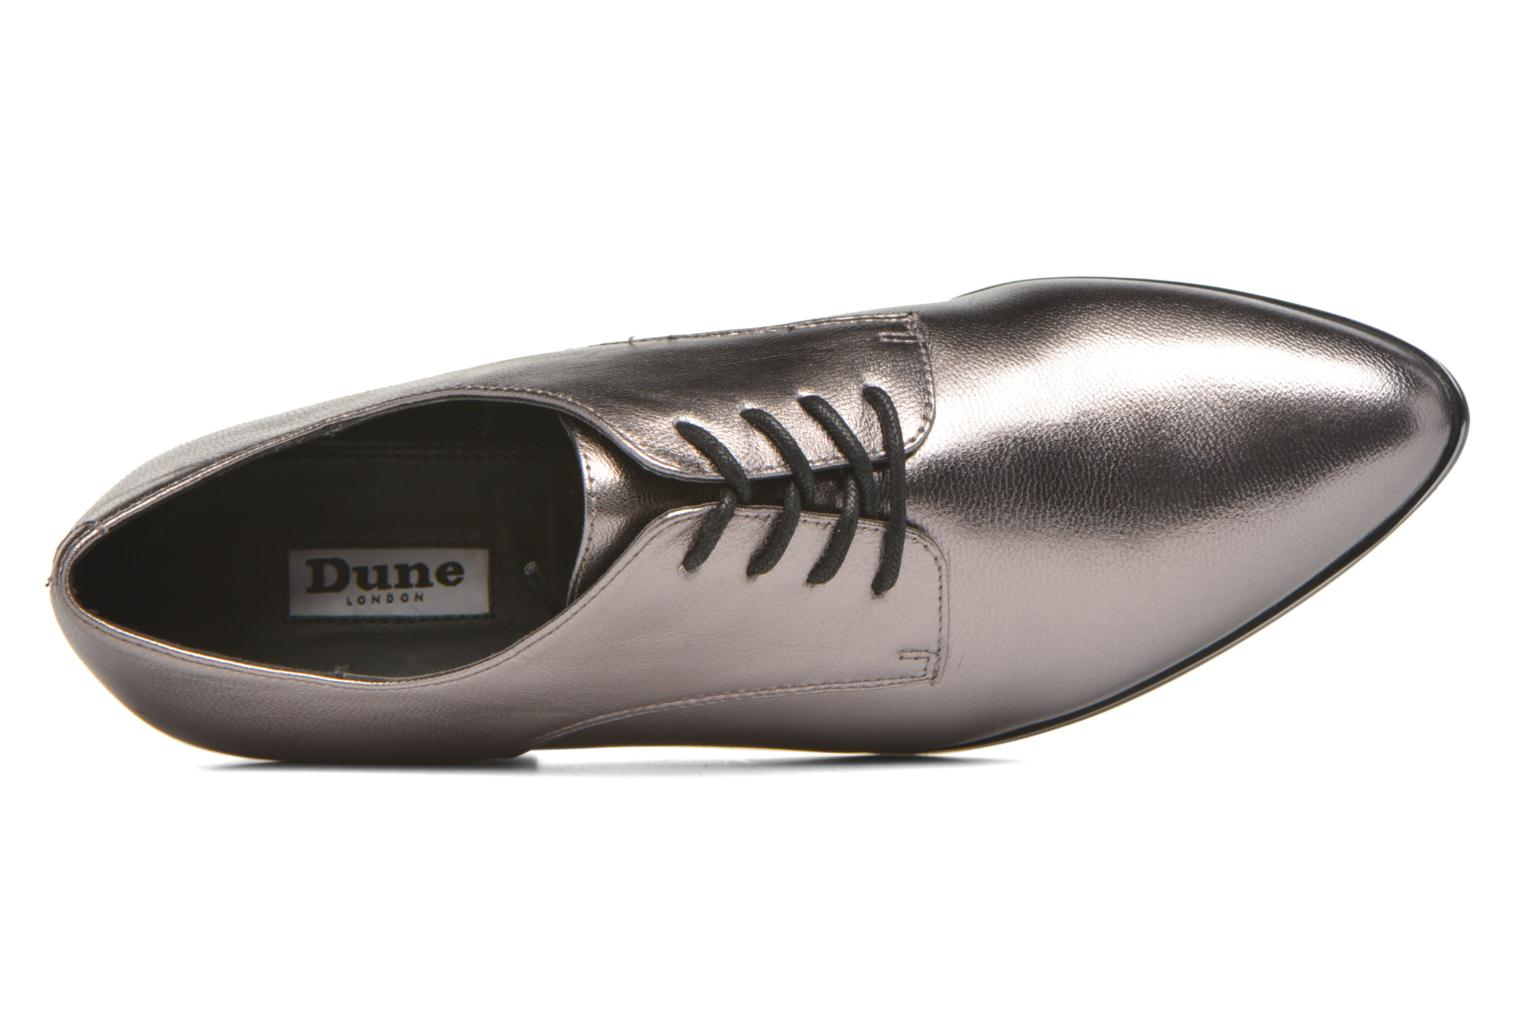 Loris Pewter metallic leather